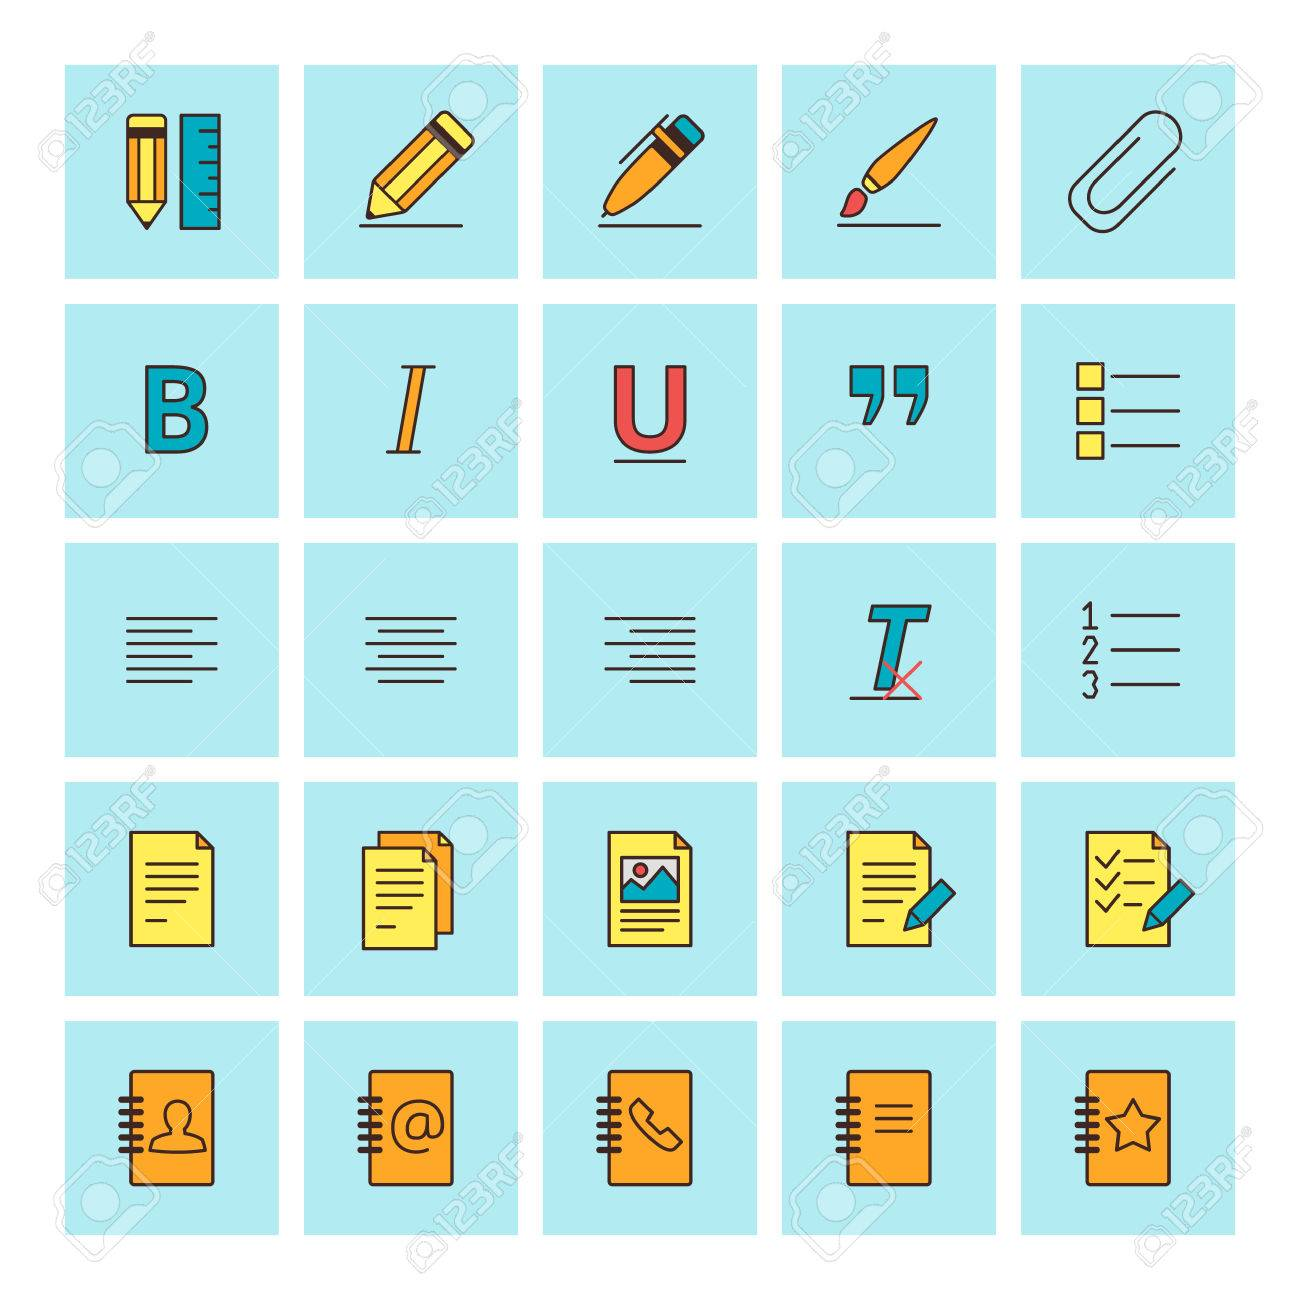 text formatting icons vector icon set in flat design style